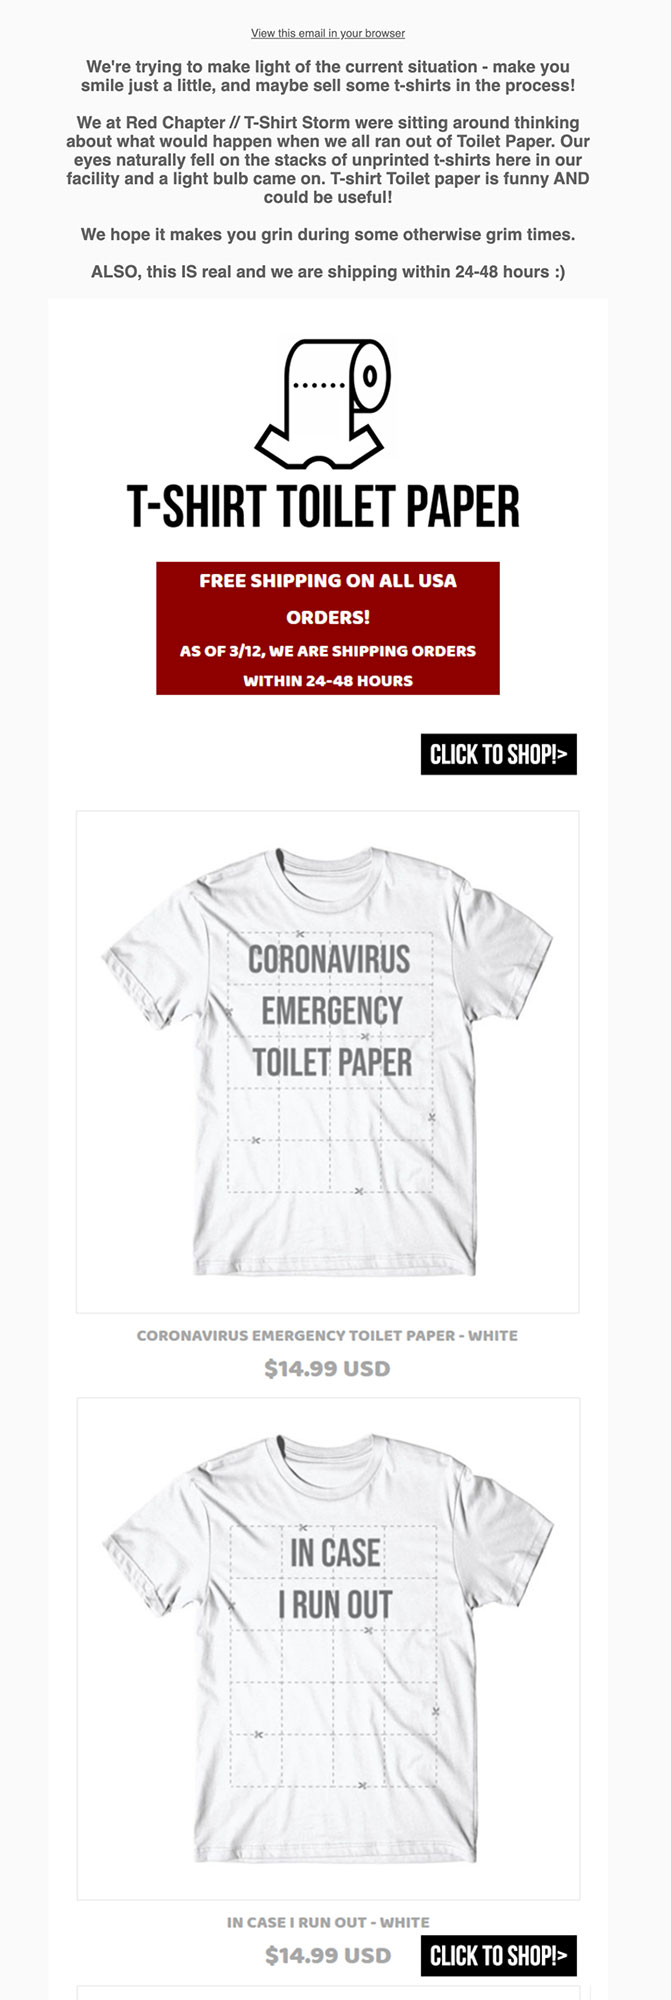 Red Chapter Clothing makes t-shirt toilet paper.